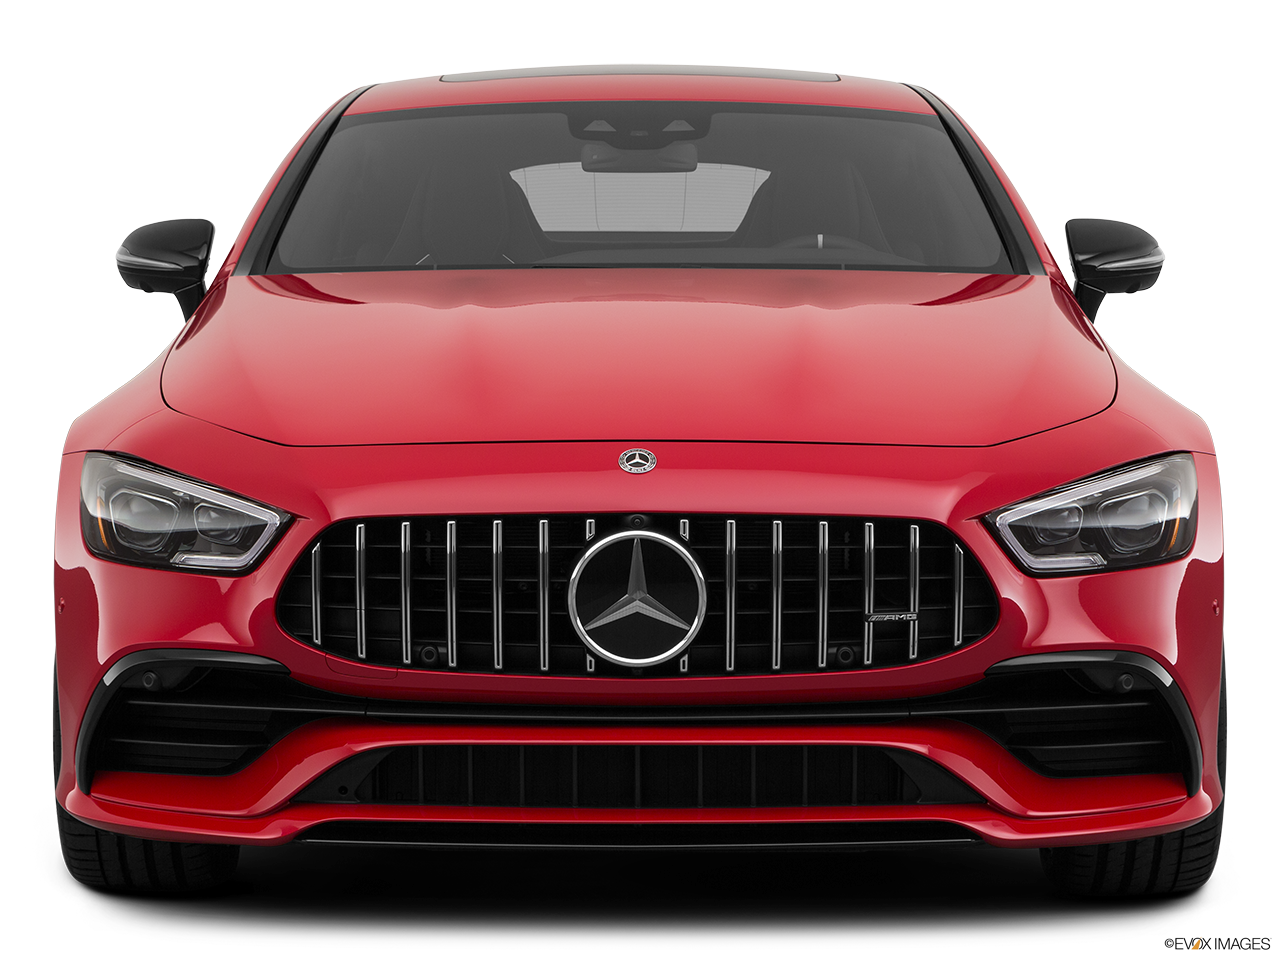 2019 Mercedes-Benz AMG GT photo